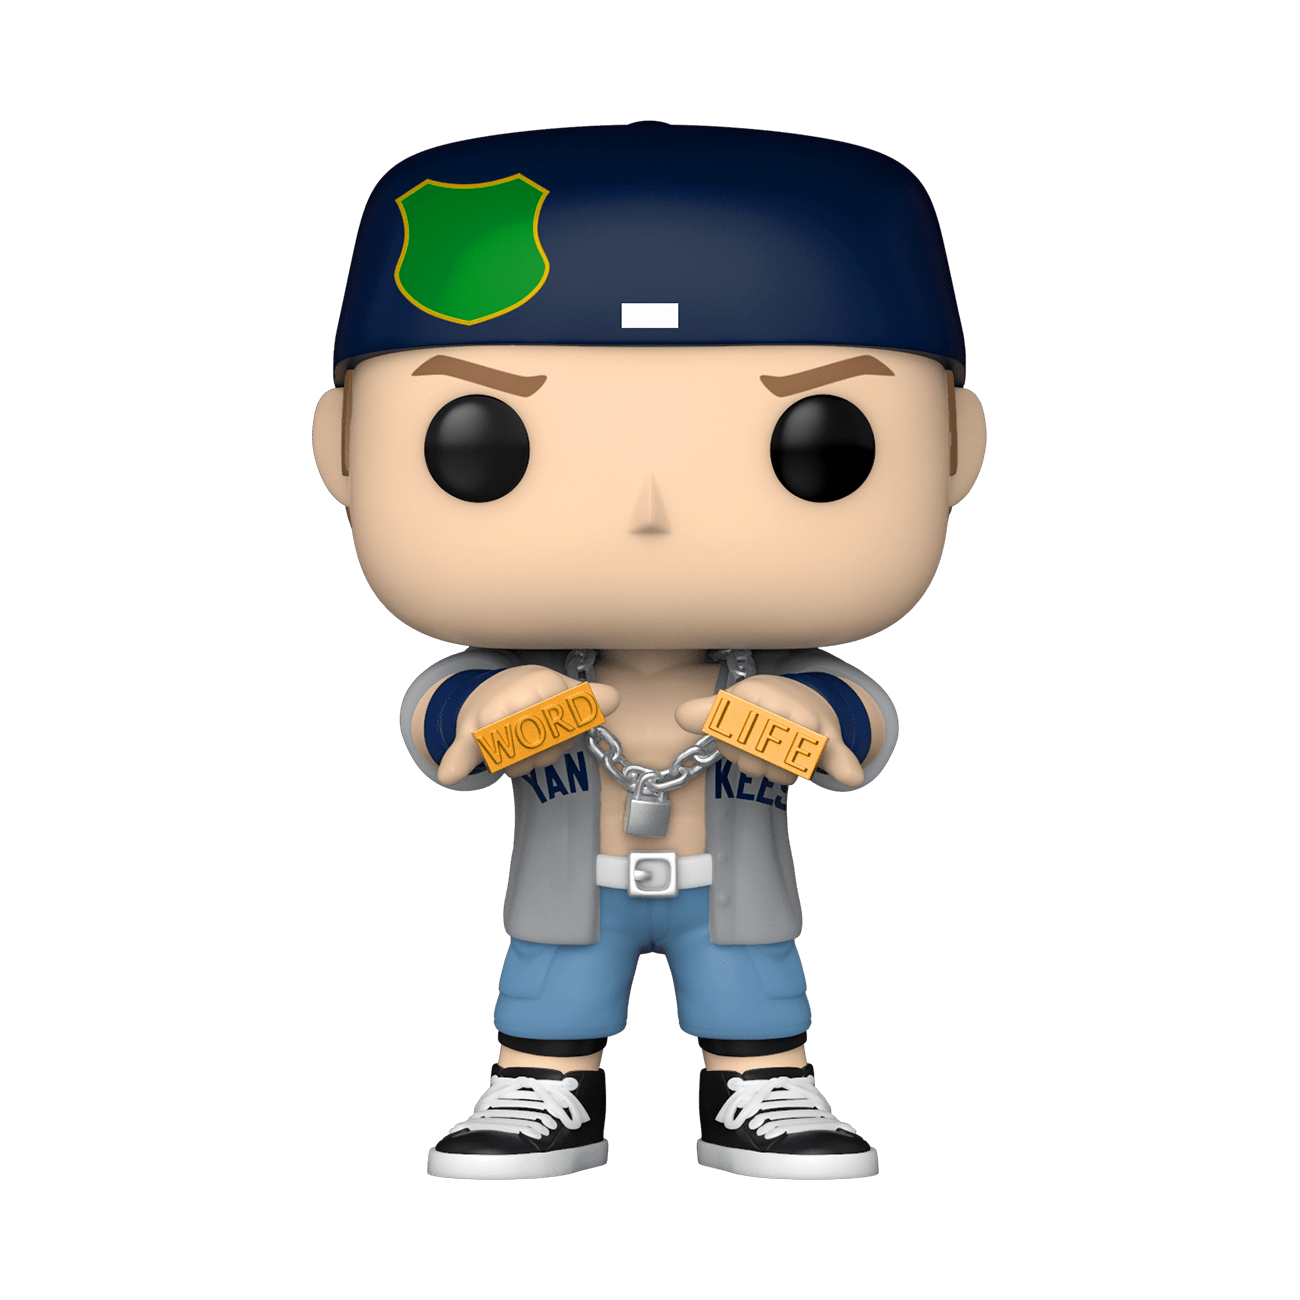 46848_WWE_JohnCena_POP_GLAM-WEB-82005c4d8d608e43fe66ab0c31ce5c7e.png